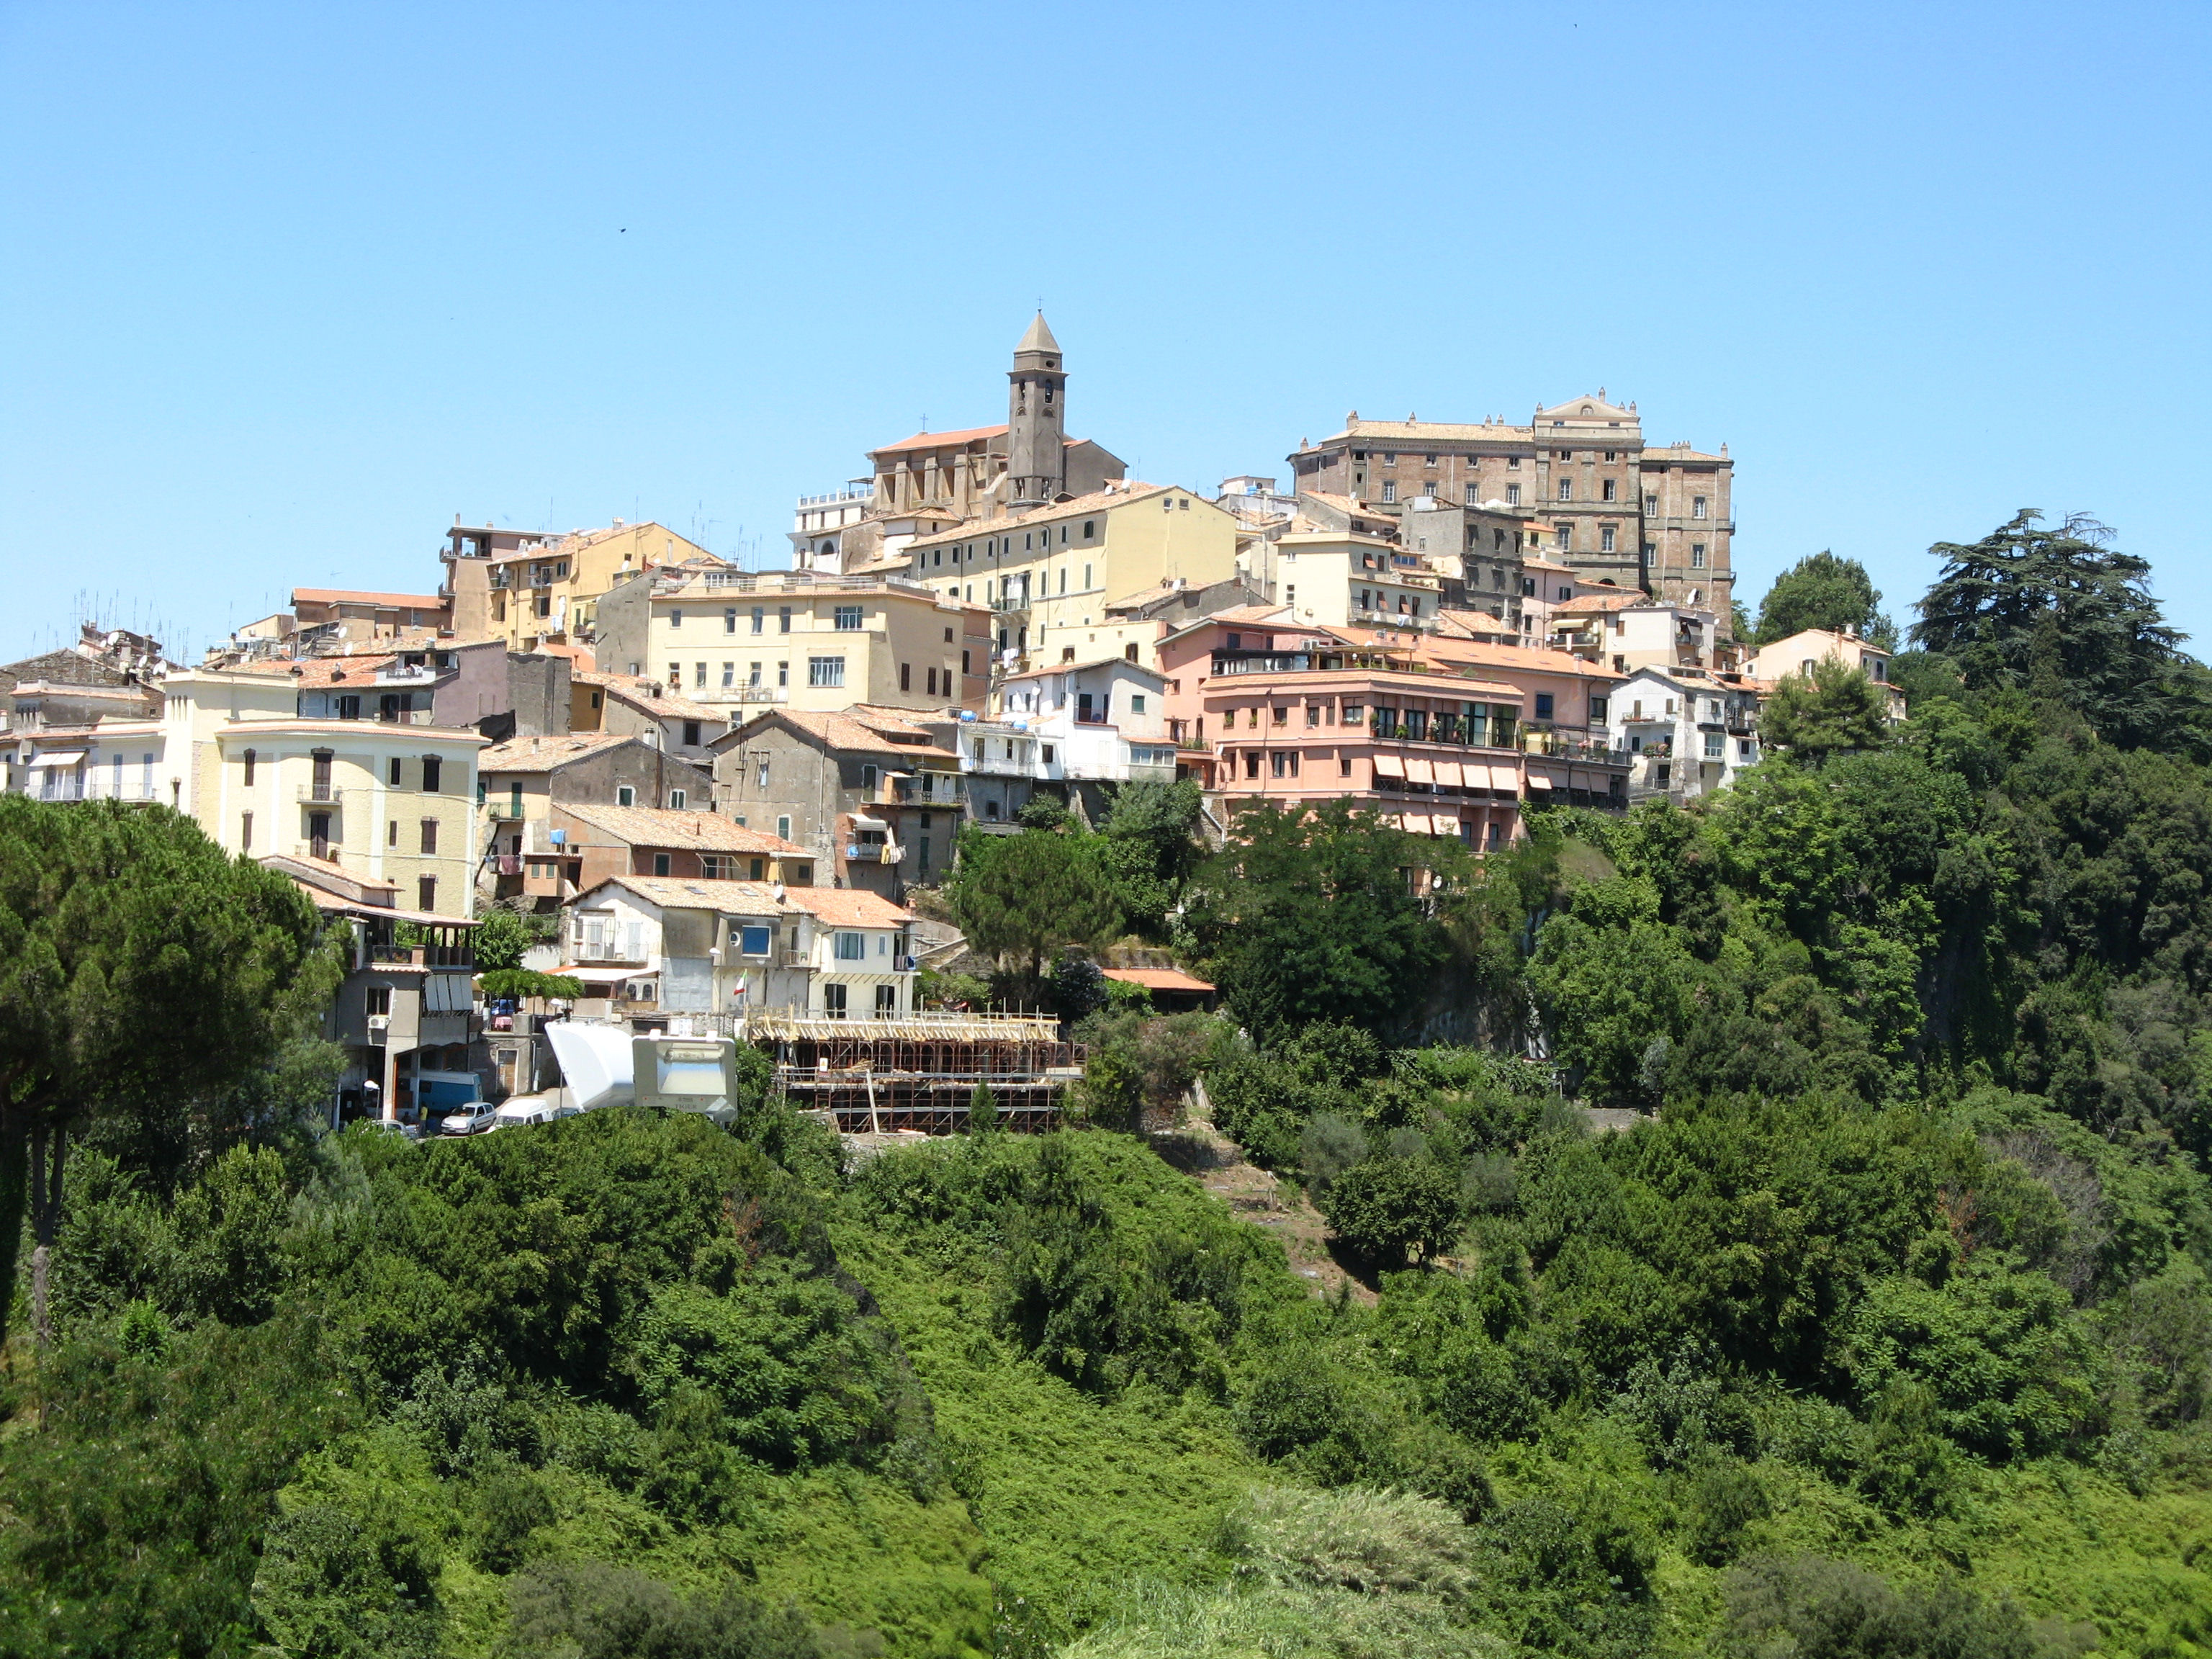 Castelli Romani5 Rome information Rome Information the best site on tourism in rome